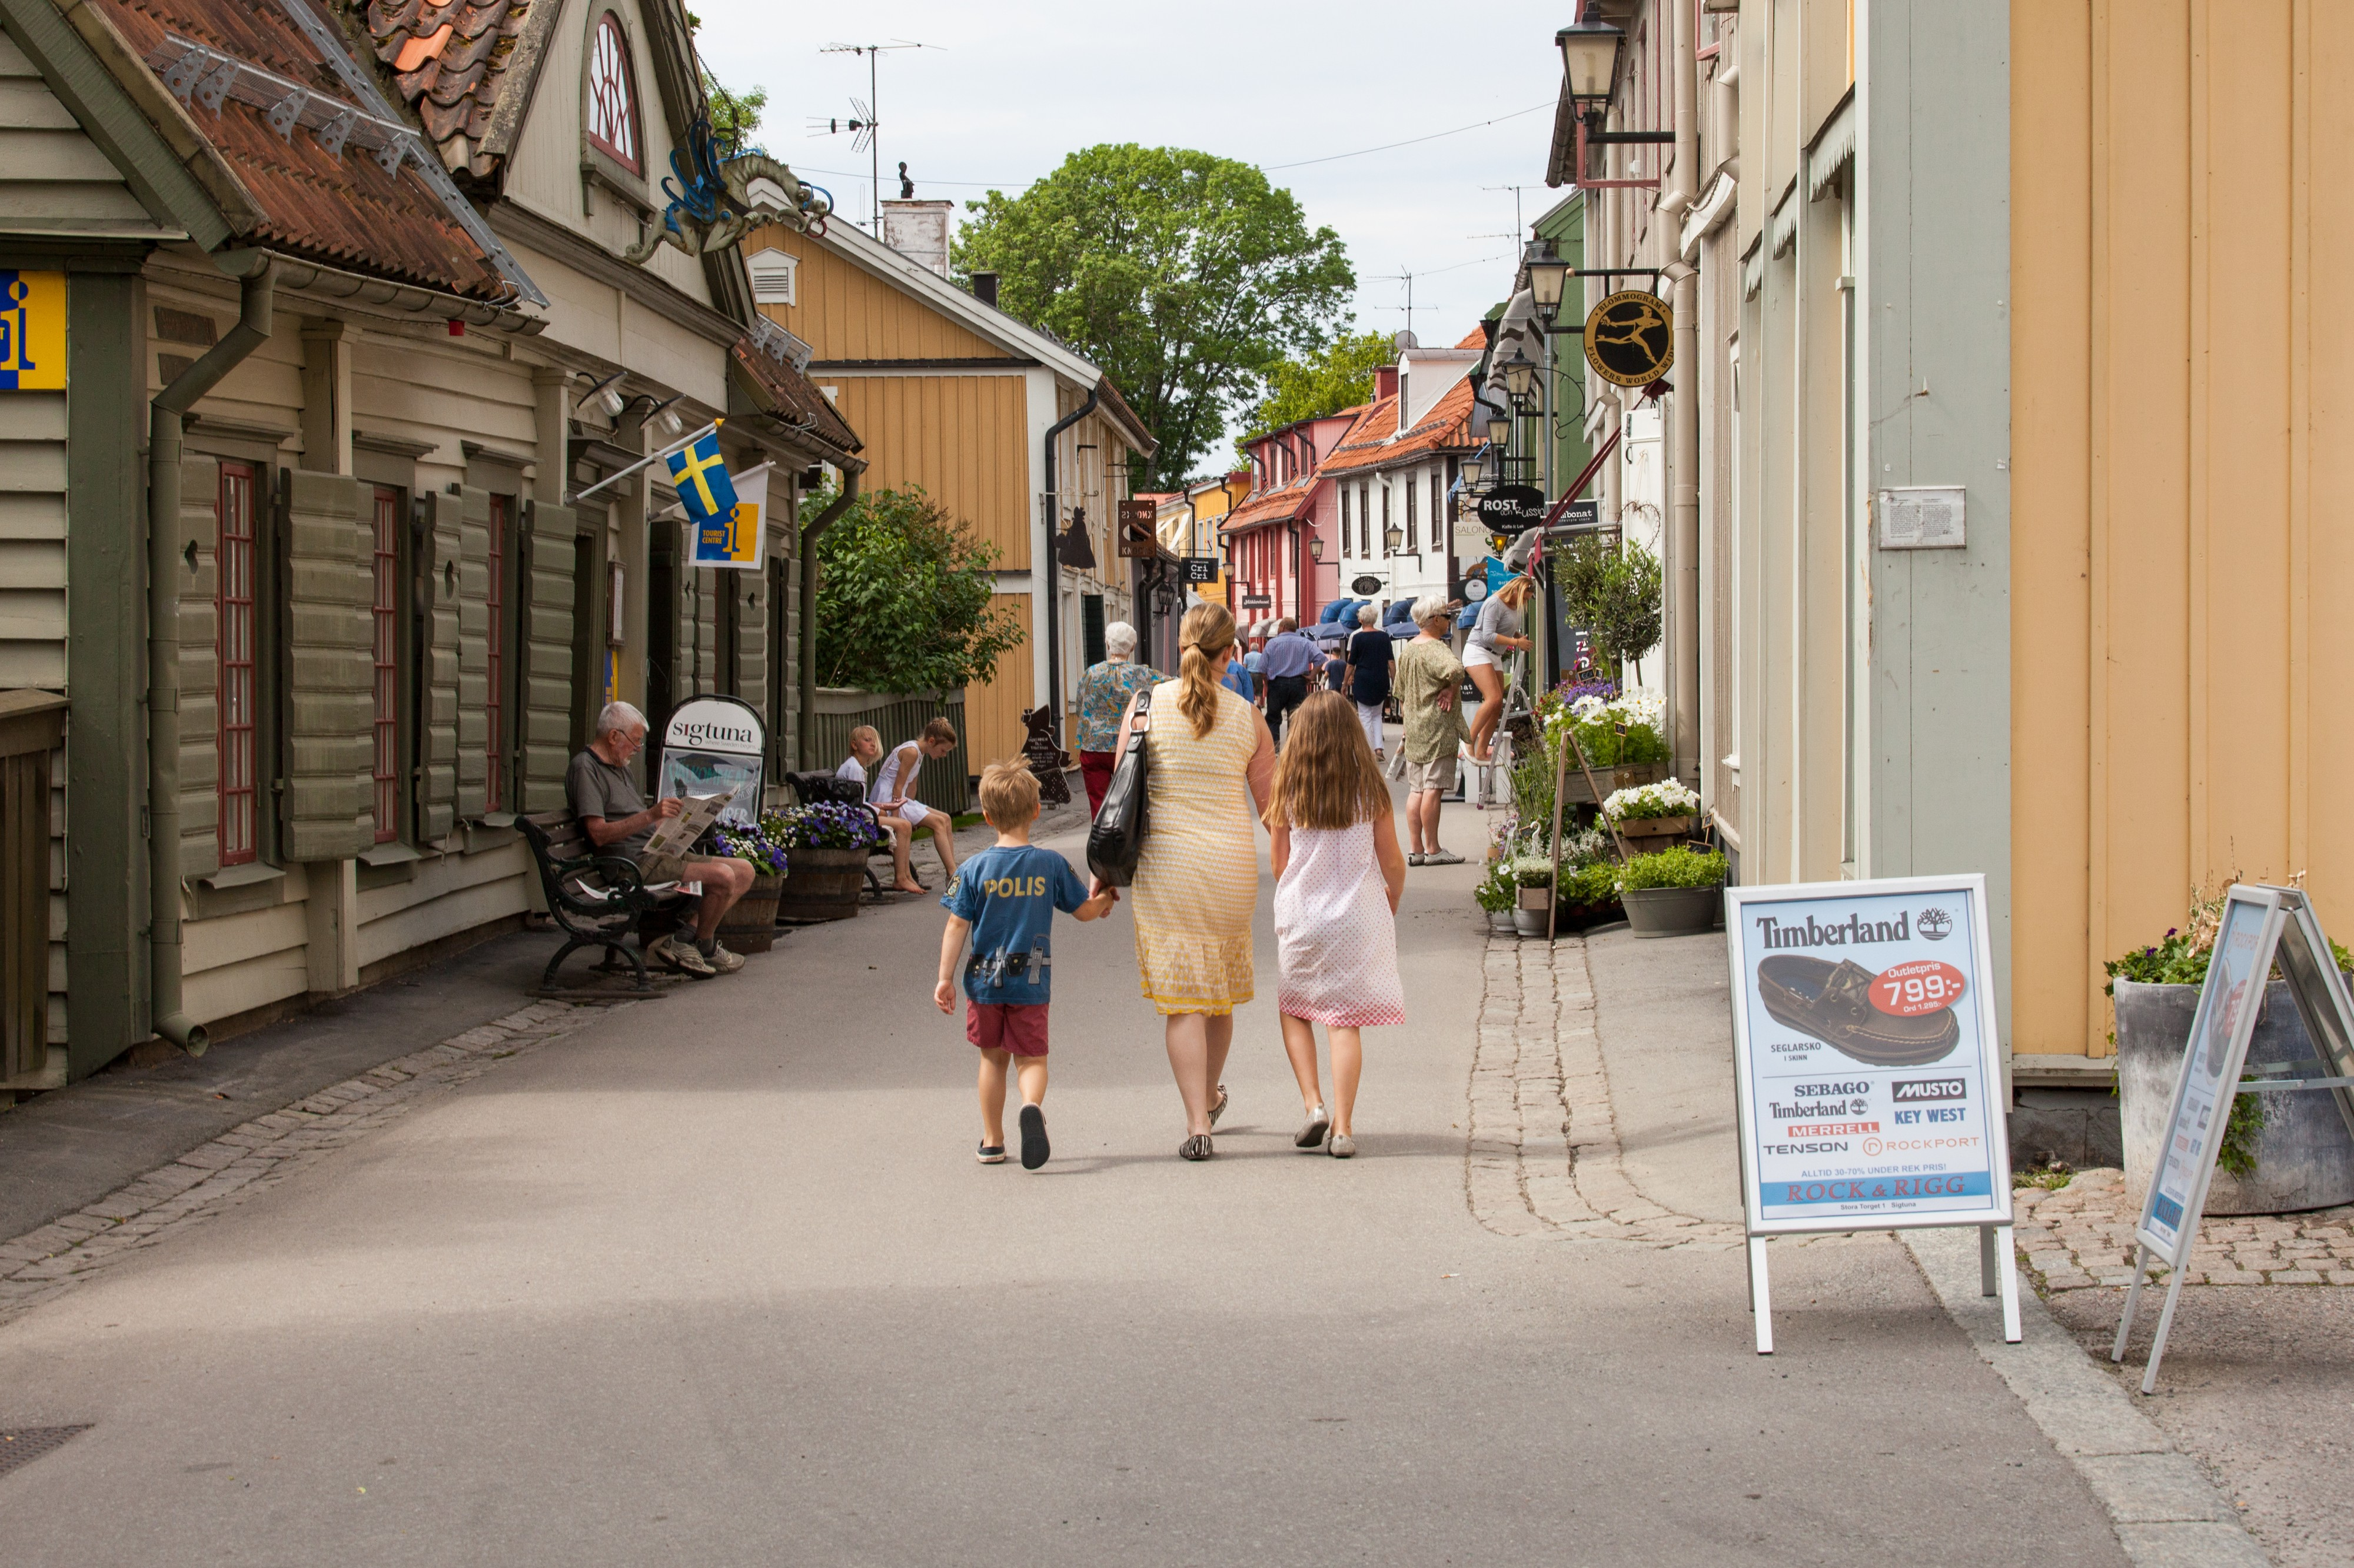 Sigtuna town, Sweden, June 2014, picture 3